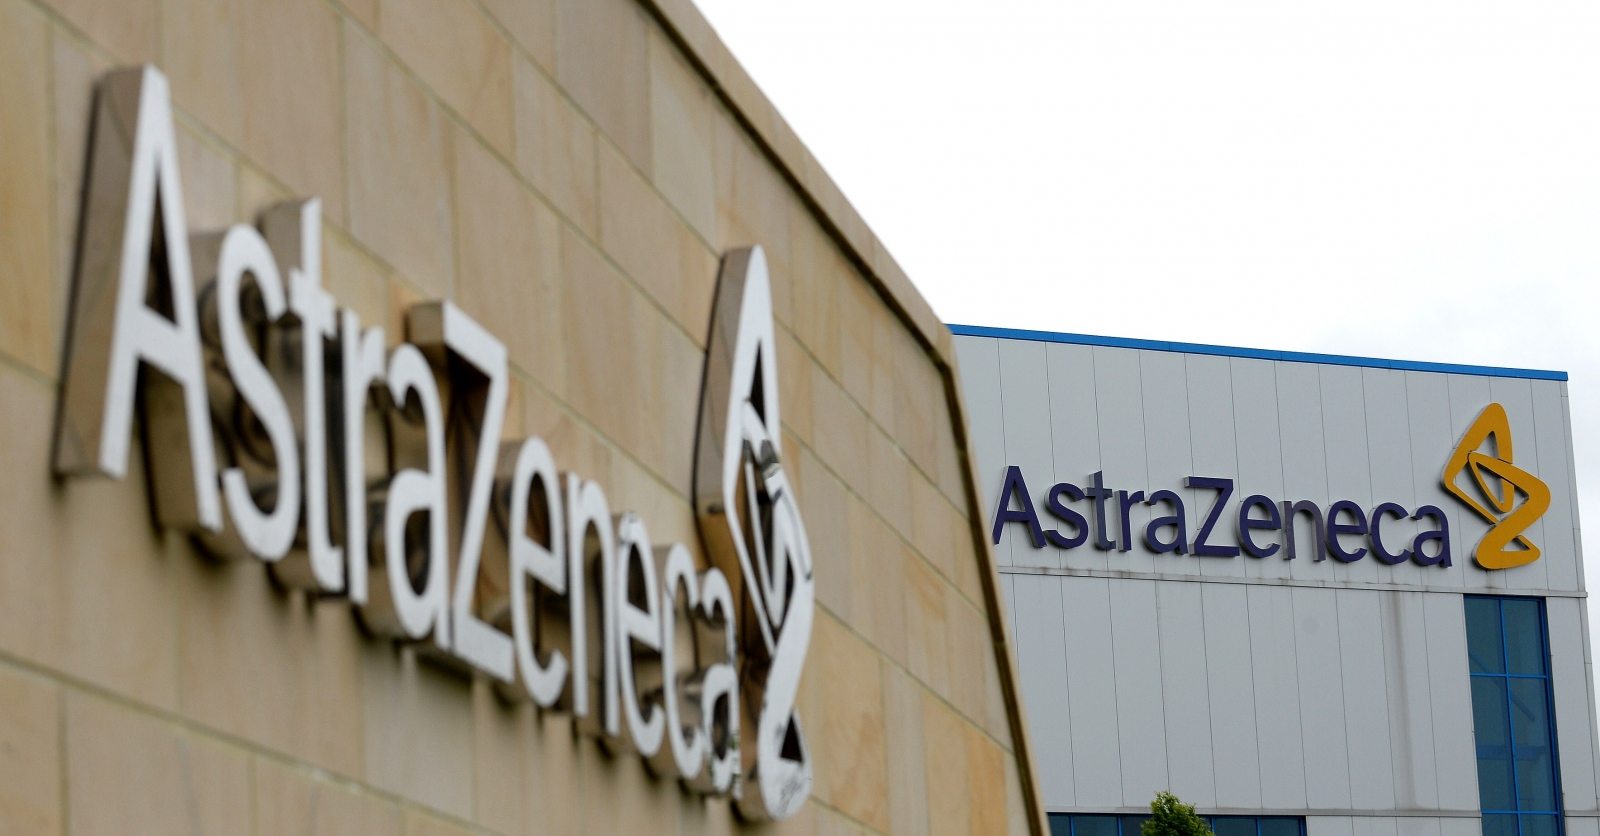 AstraZeneca to sell antibiotics business to Pfizer